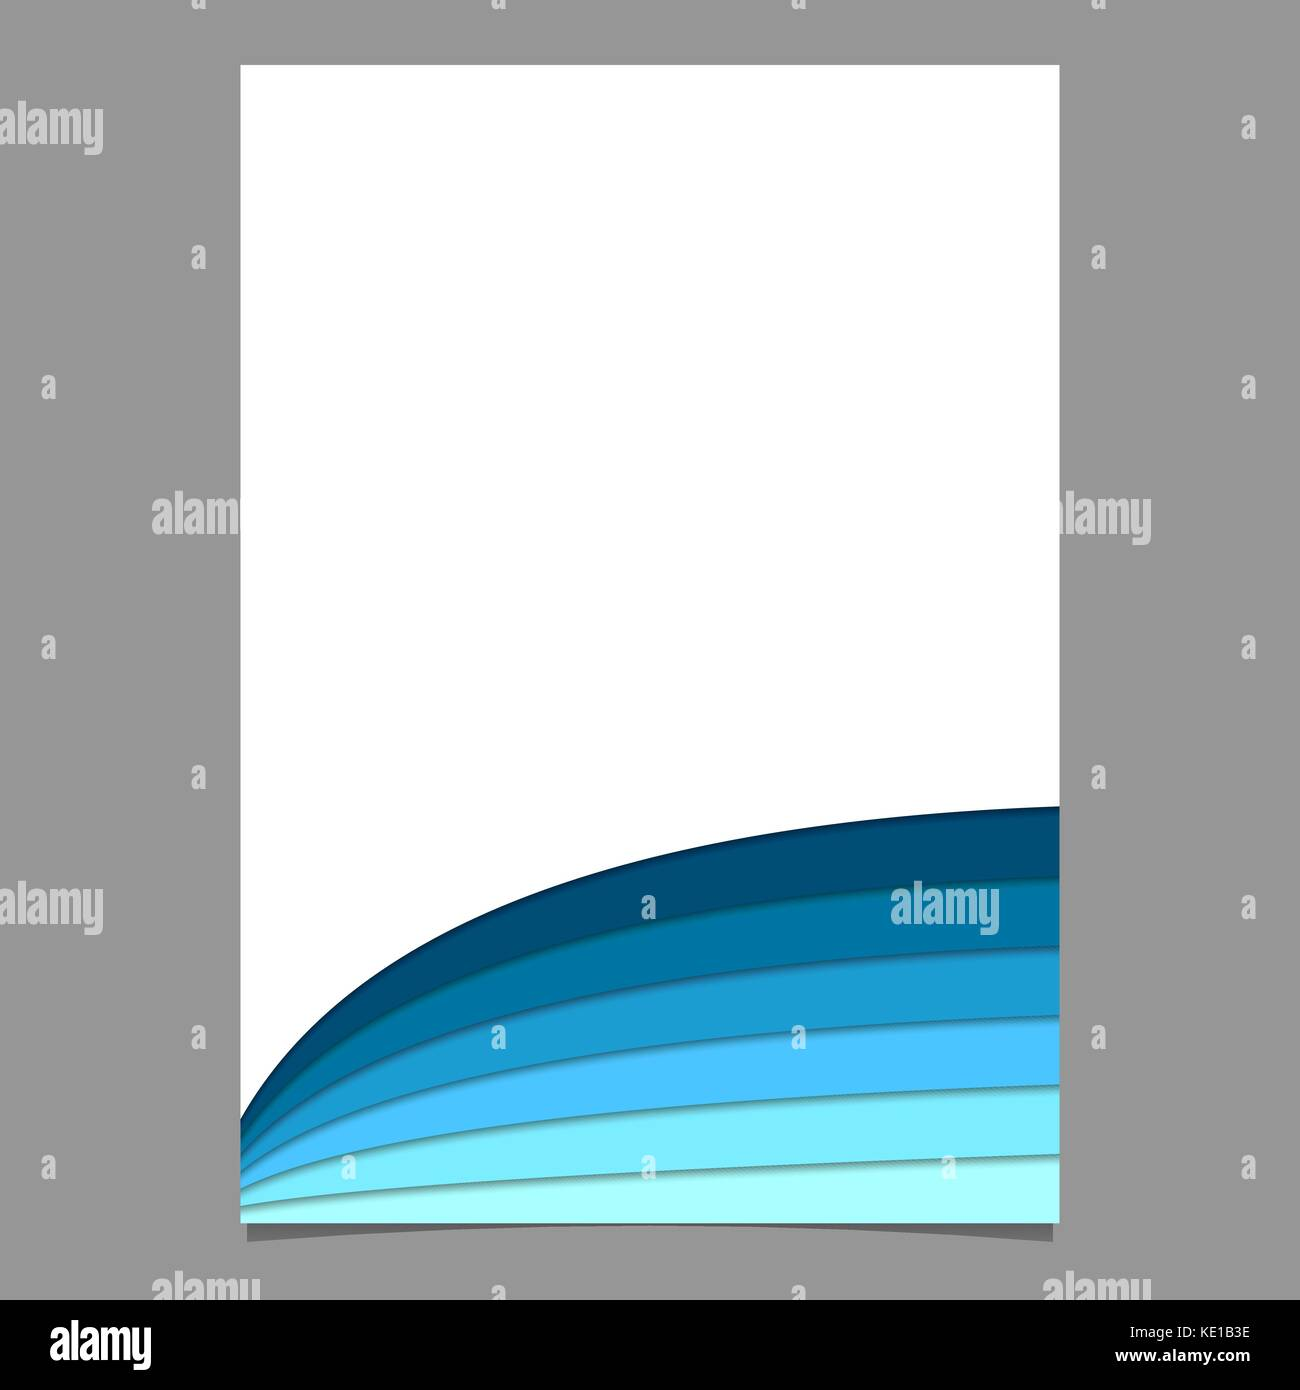 Blank Brochure Template From Curved Stripes In Blue Tones Vector - Blank brochure template